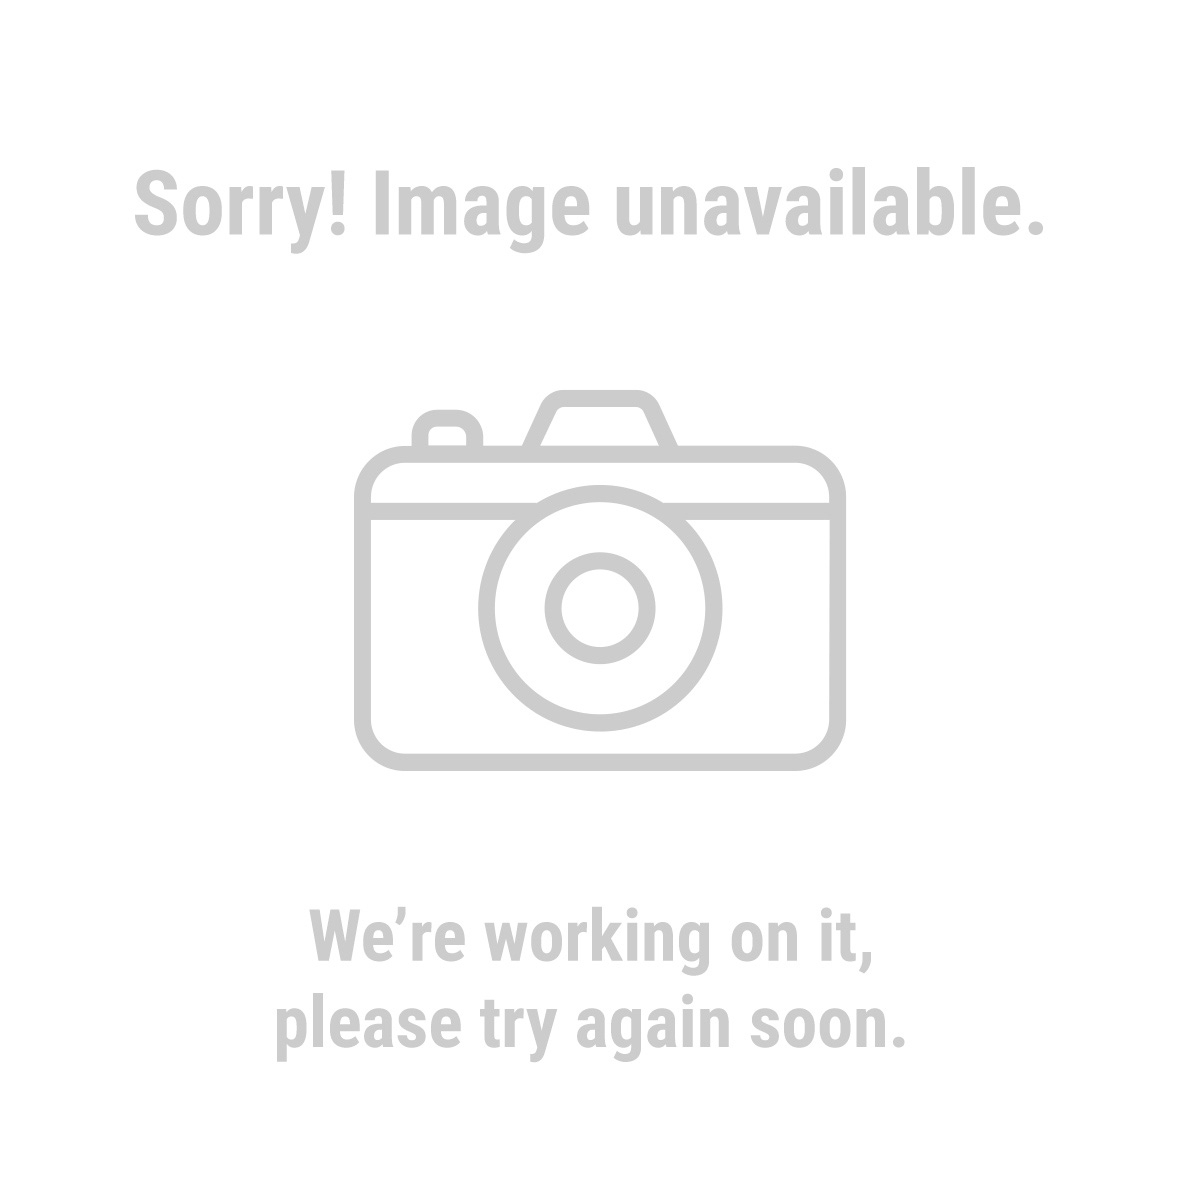 Haul-Master® 66911 Step Stool/Working Platform